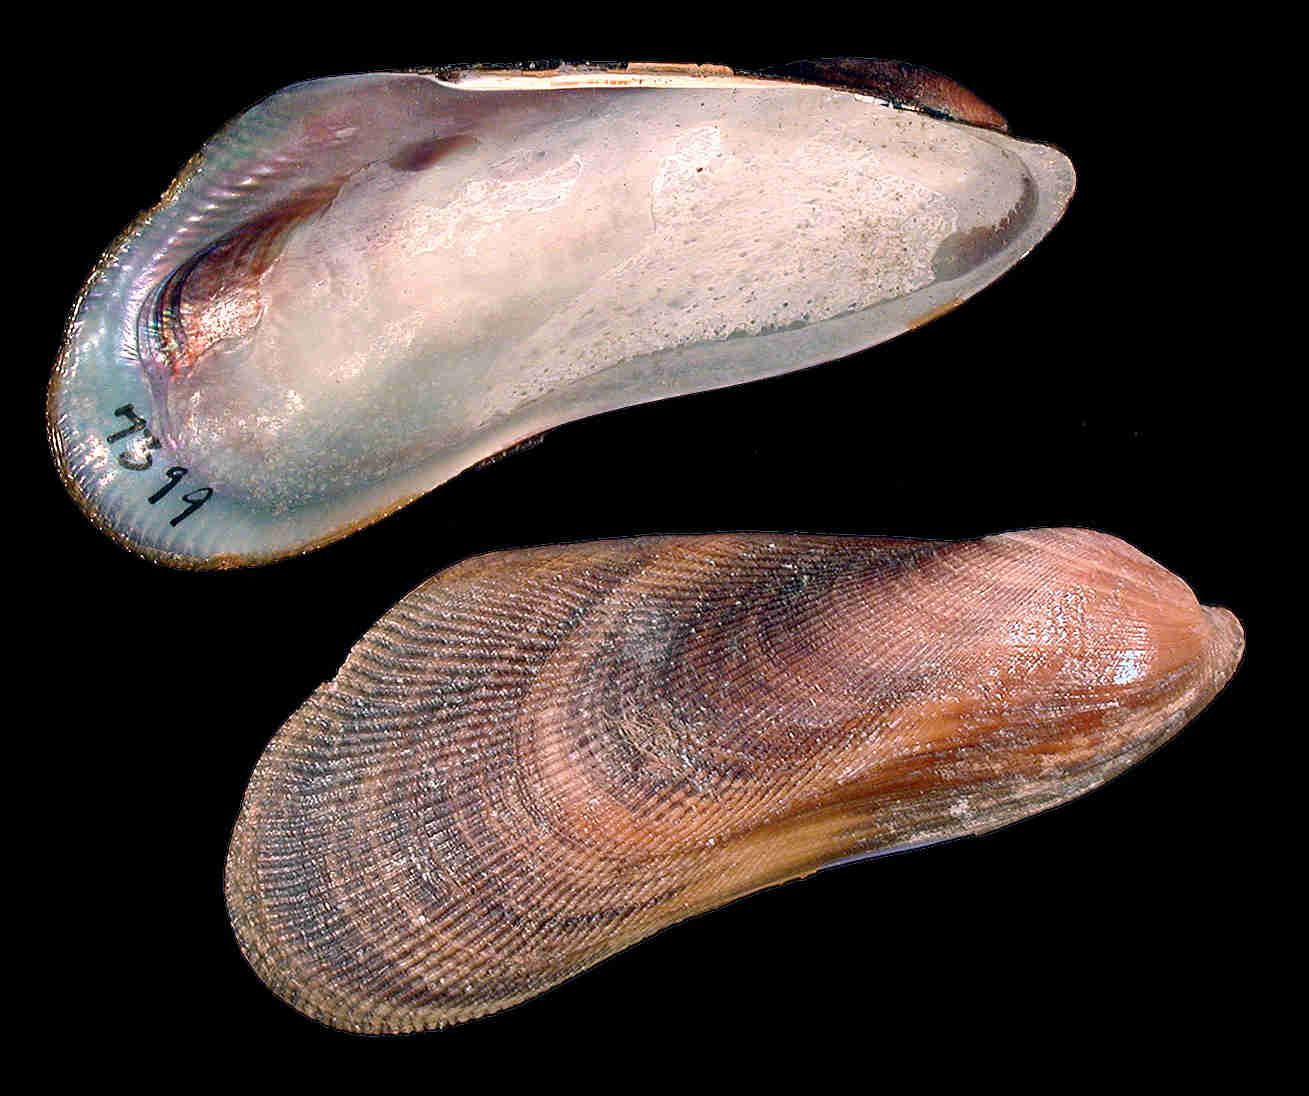 Southern Ribbed Mussel